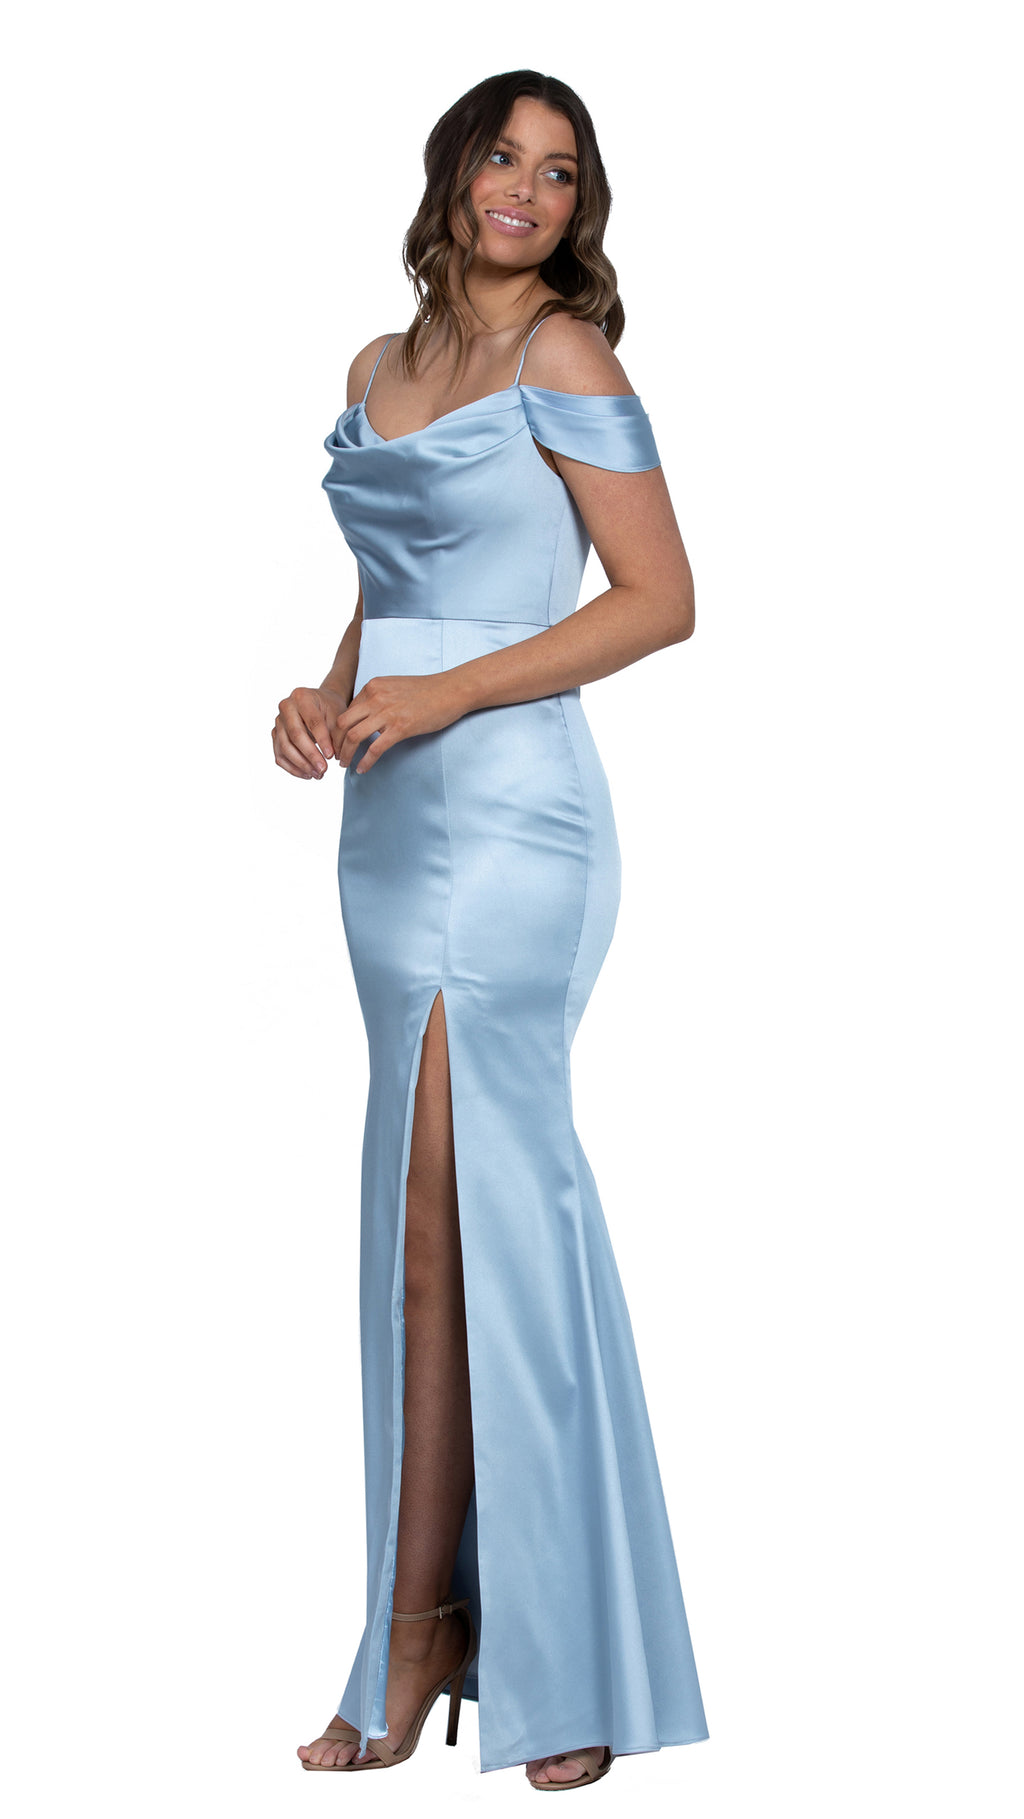 Christy Cowl Off Shoulder Gown in Sky Blue